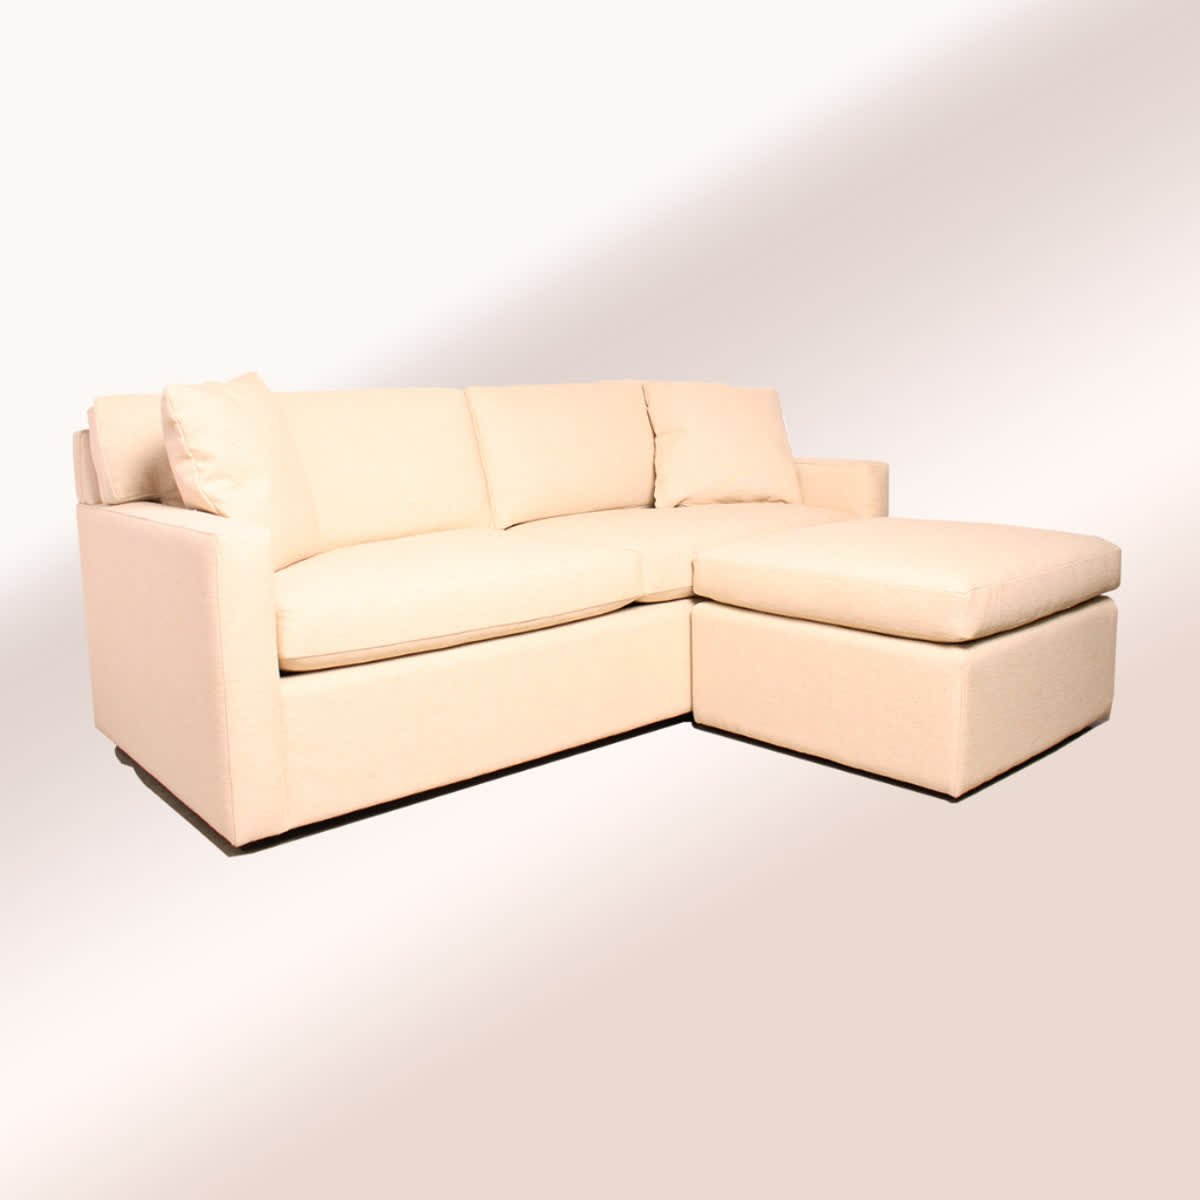 Wondrous Avery Boardman On Twitter Any Of Our Sofas Can Be Ocoug Best Dining Table And Chair Ideas Images Ocougorg